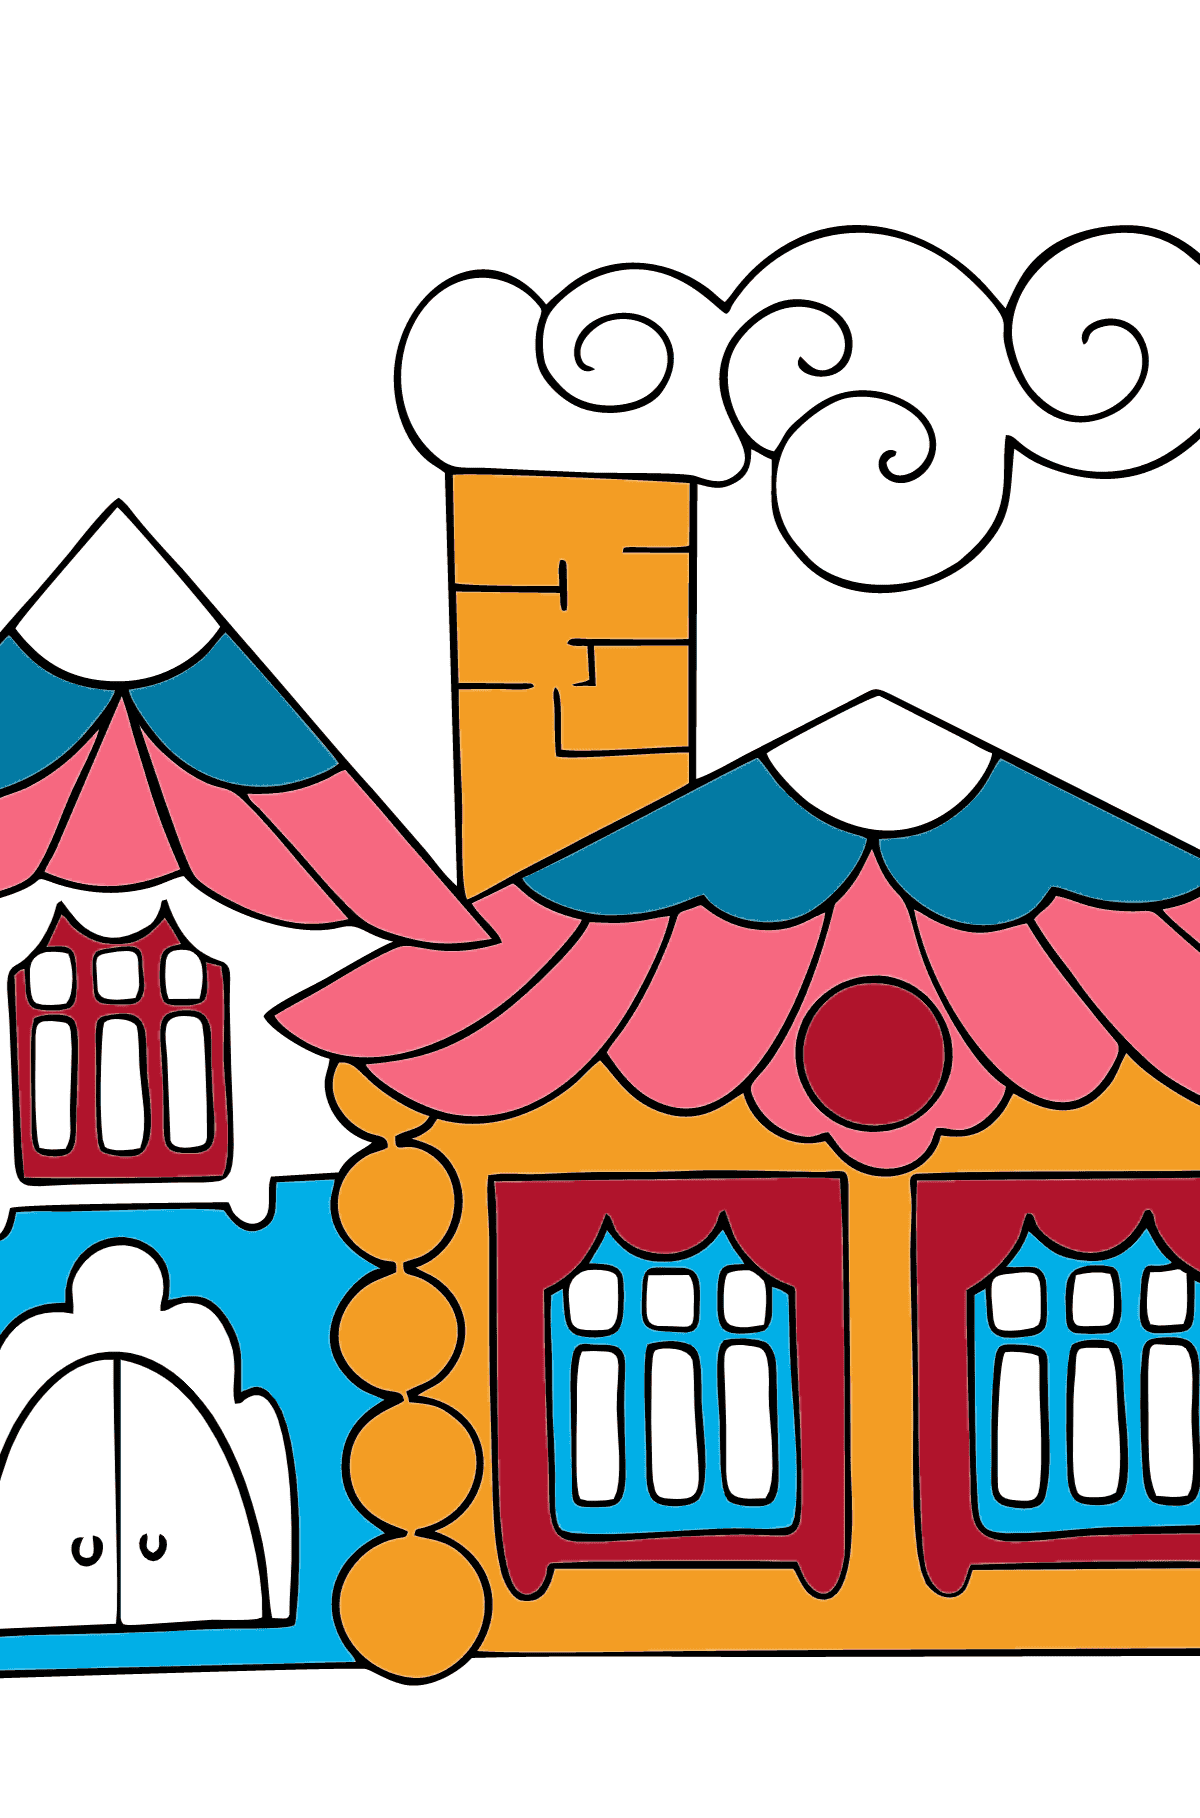 Simple Coloring Page - A House in the Forest - Coloring Pages for Children